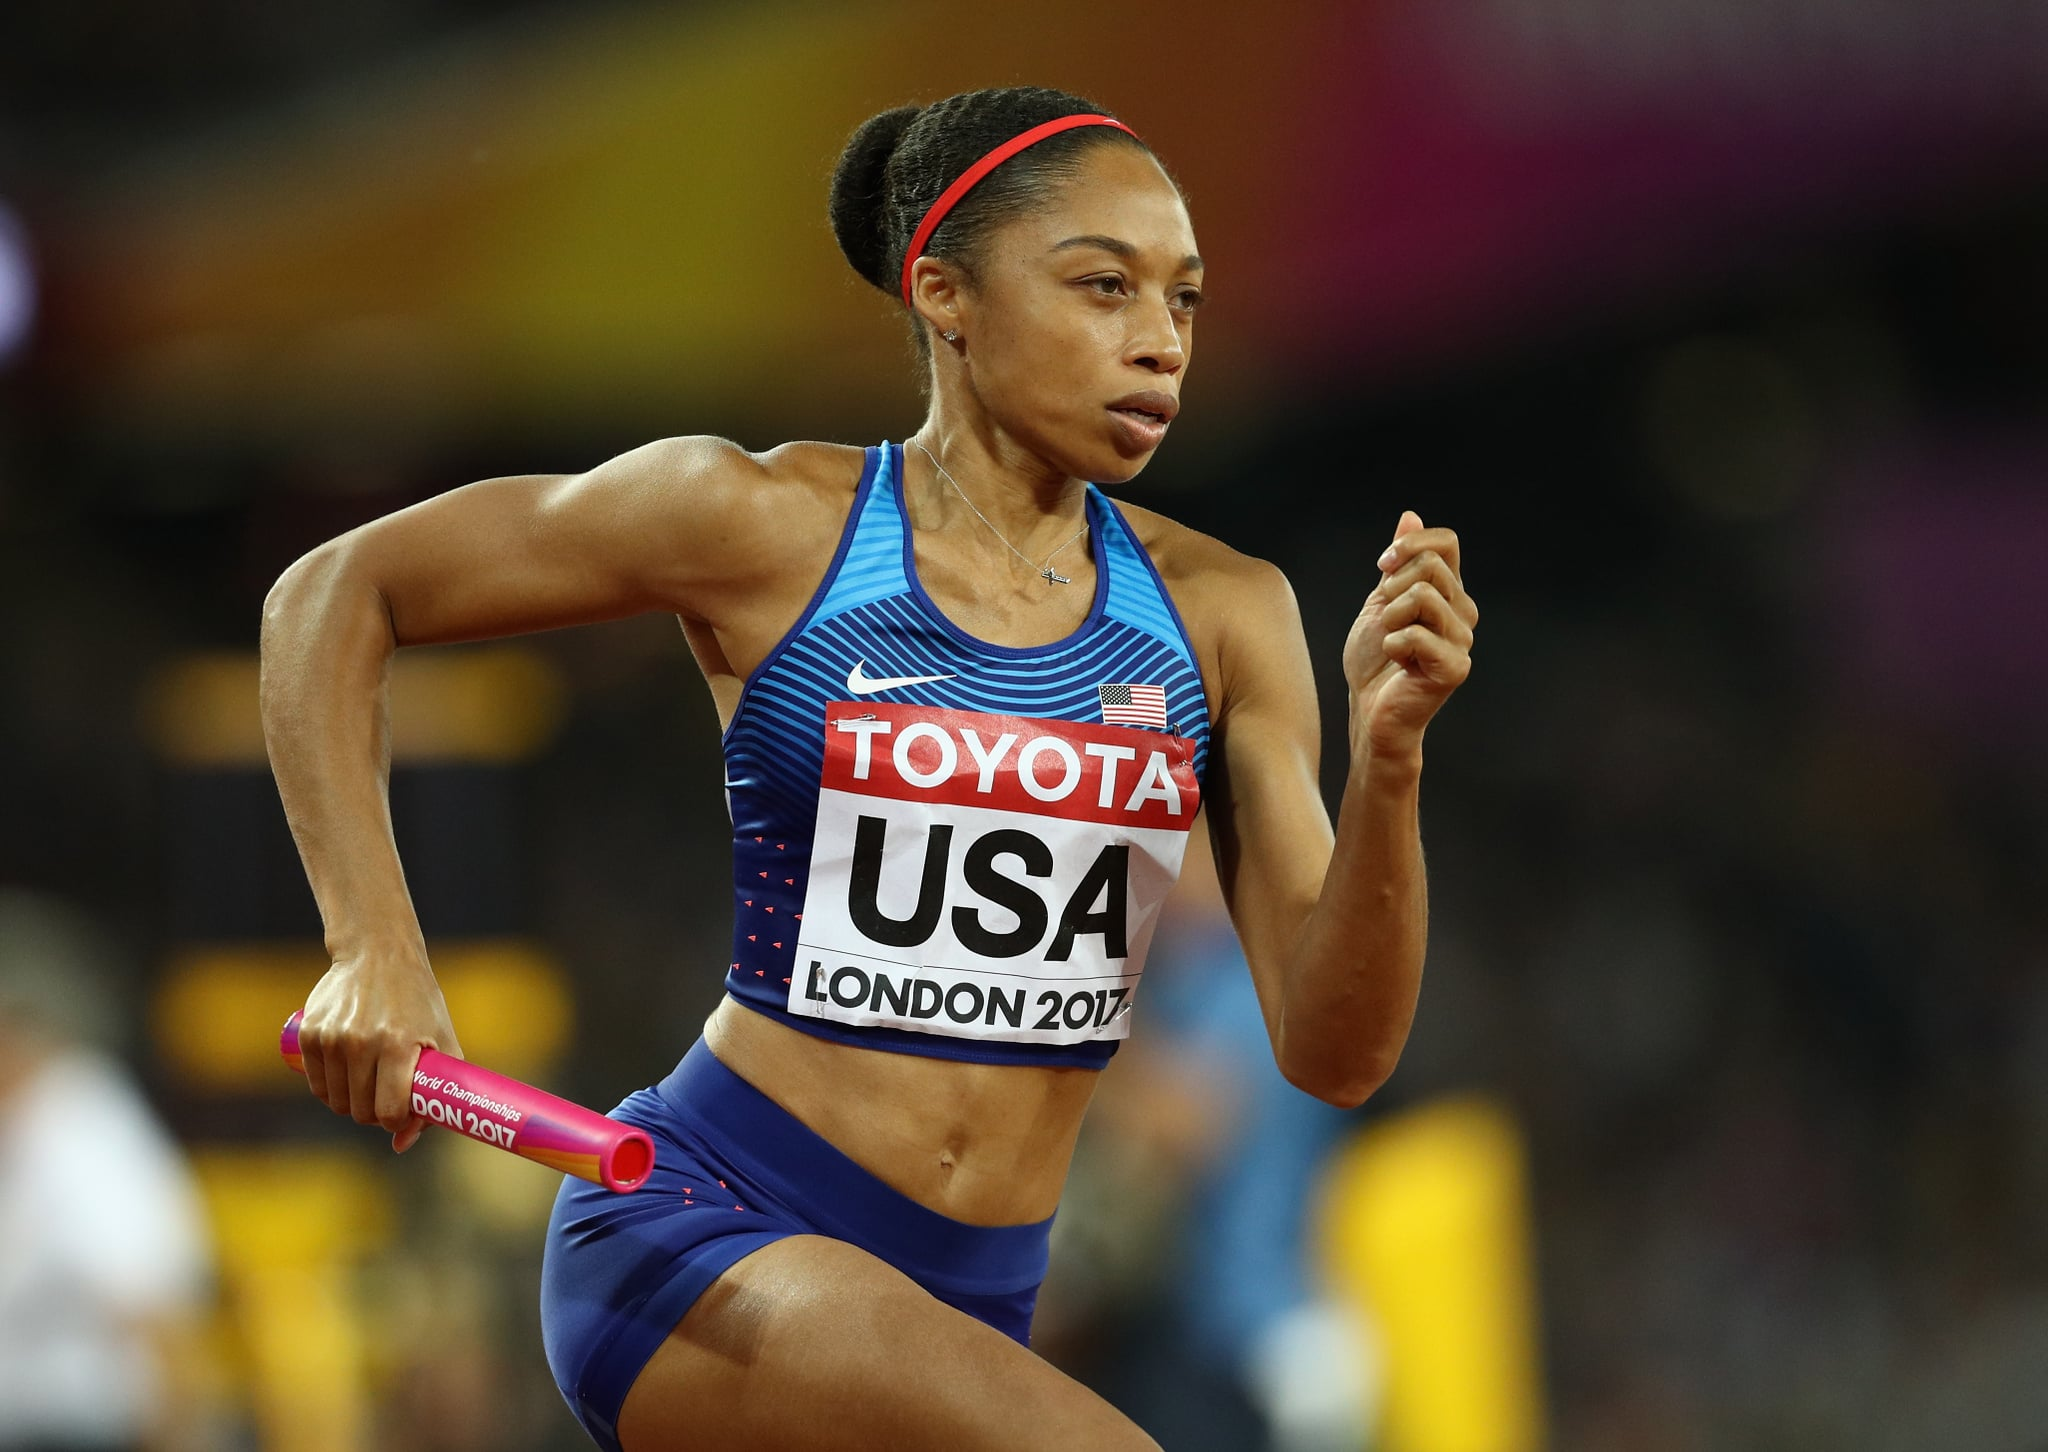 LONDON, ENGLAND - AUGUST 13:  Allyson Felix of the United States during the Women's 4x400 Metres Relay final during day ten of the 16th IAAF World Athletics Championships London 2017 at The London Stadium on August 13, 2017 in London, United Kingdom.  (Photo by Patrick Smith/Getty Images)